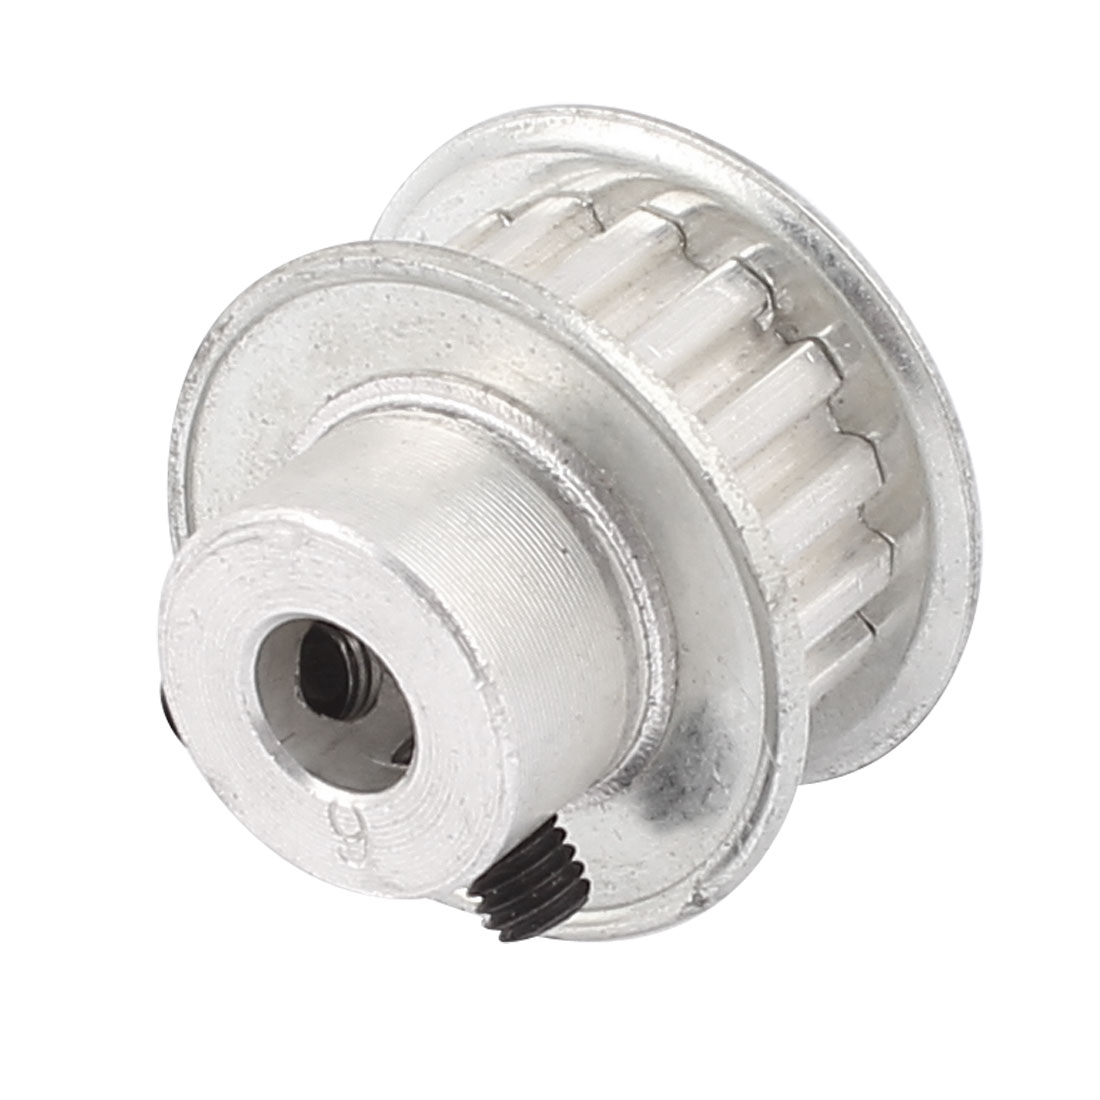 XL16 8mm Bore Dia 5mm Pitch 16-Tooth Timing Pulley for Stepper Motor